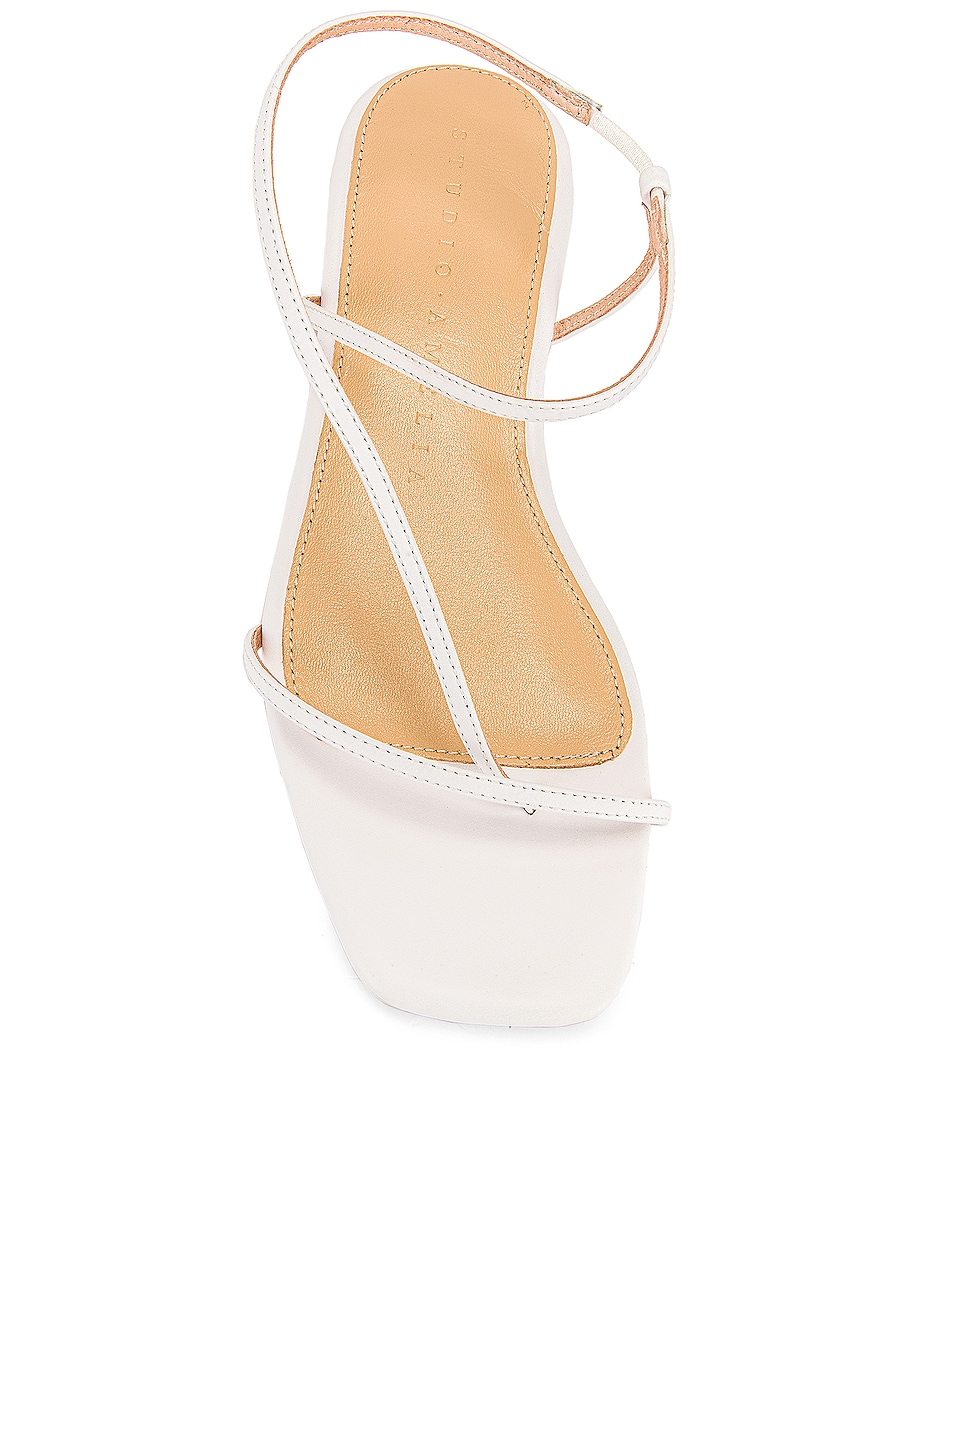 Image 4 of Studio Amelia 1.2 Sandal in White